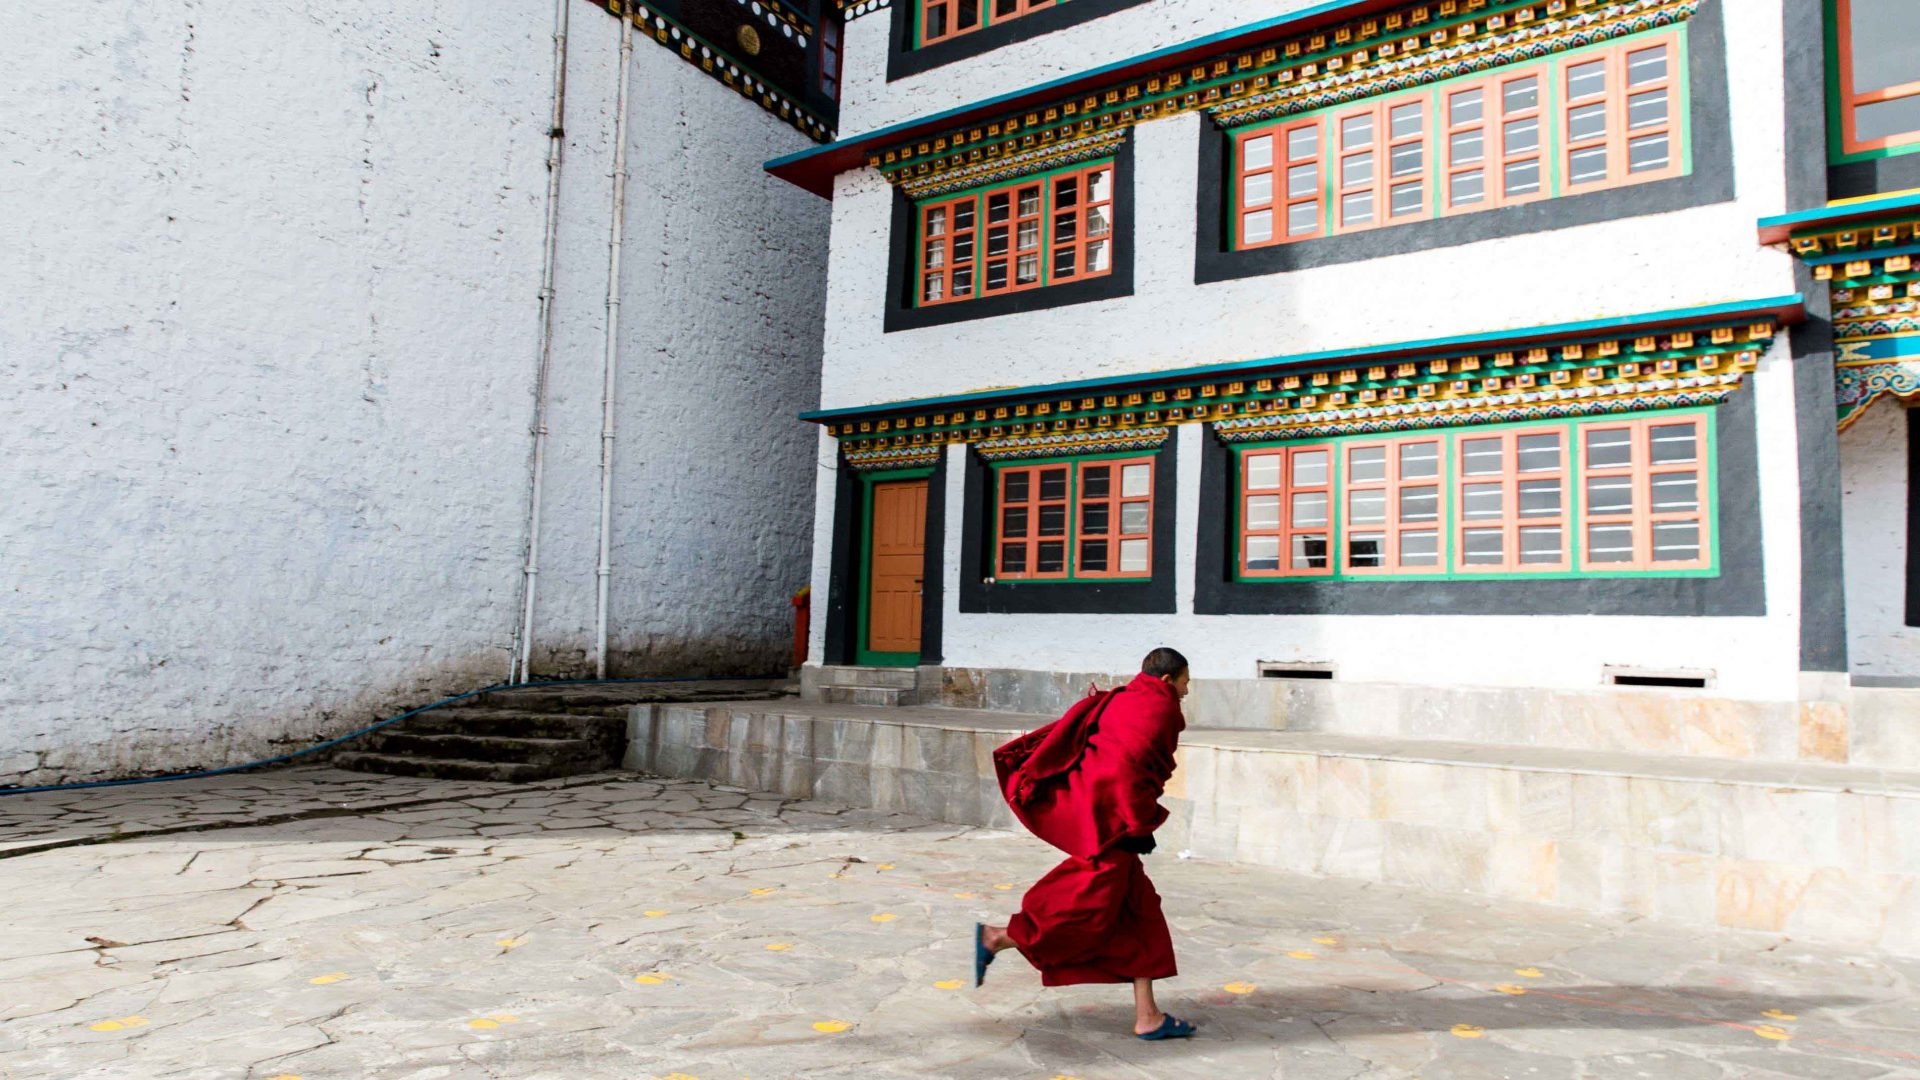 A young monk runs to morning prayer class at the Tawang Monastery, Arunachal Pradesh, India.